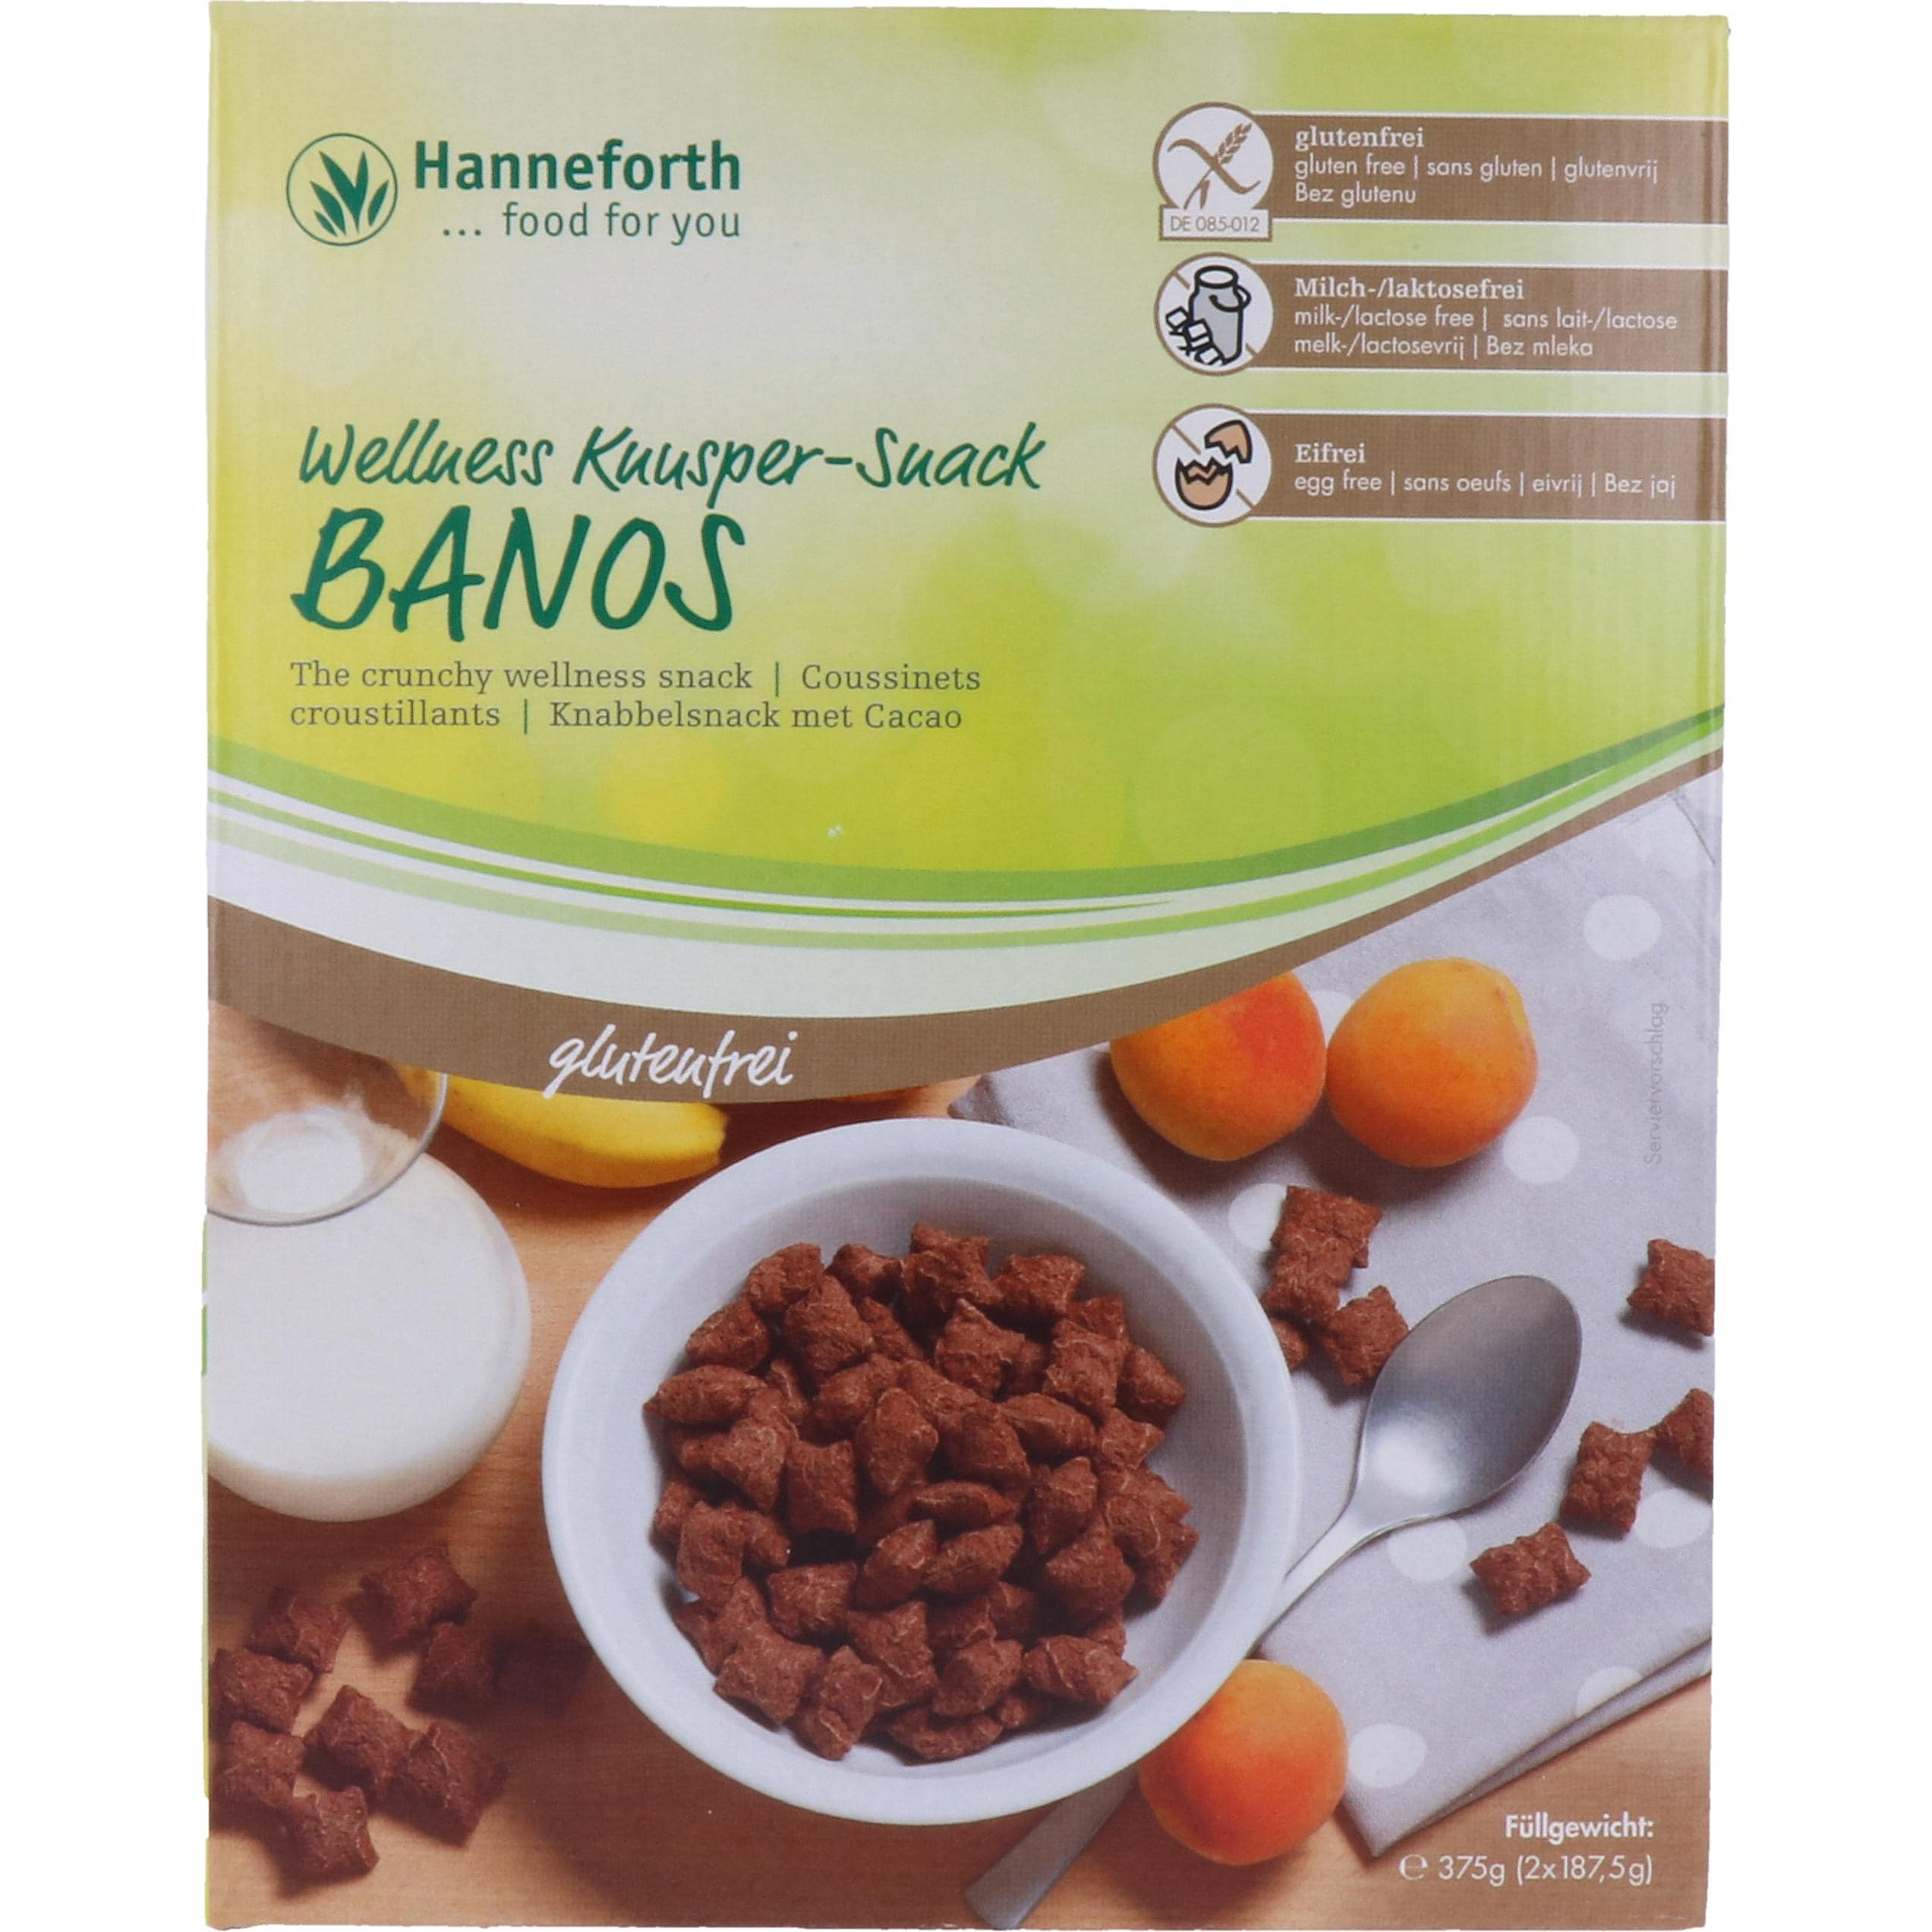 Hanneforth, food for you Banos Wellness-Knuspersnack 375g